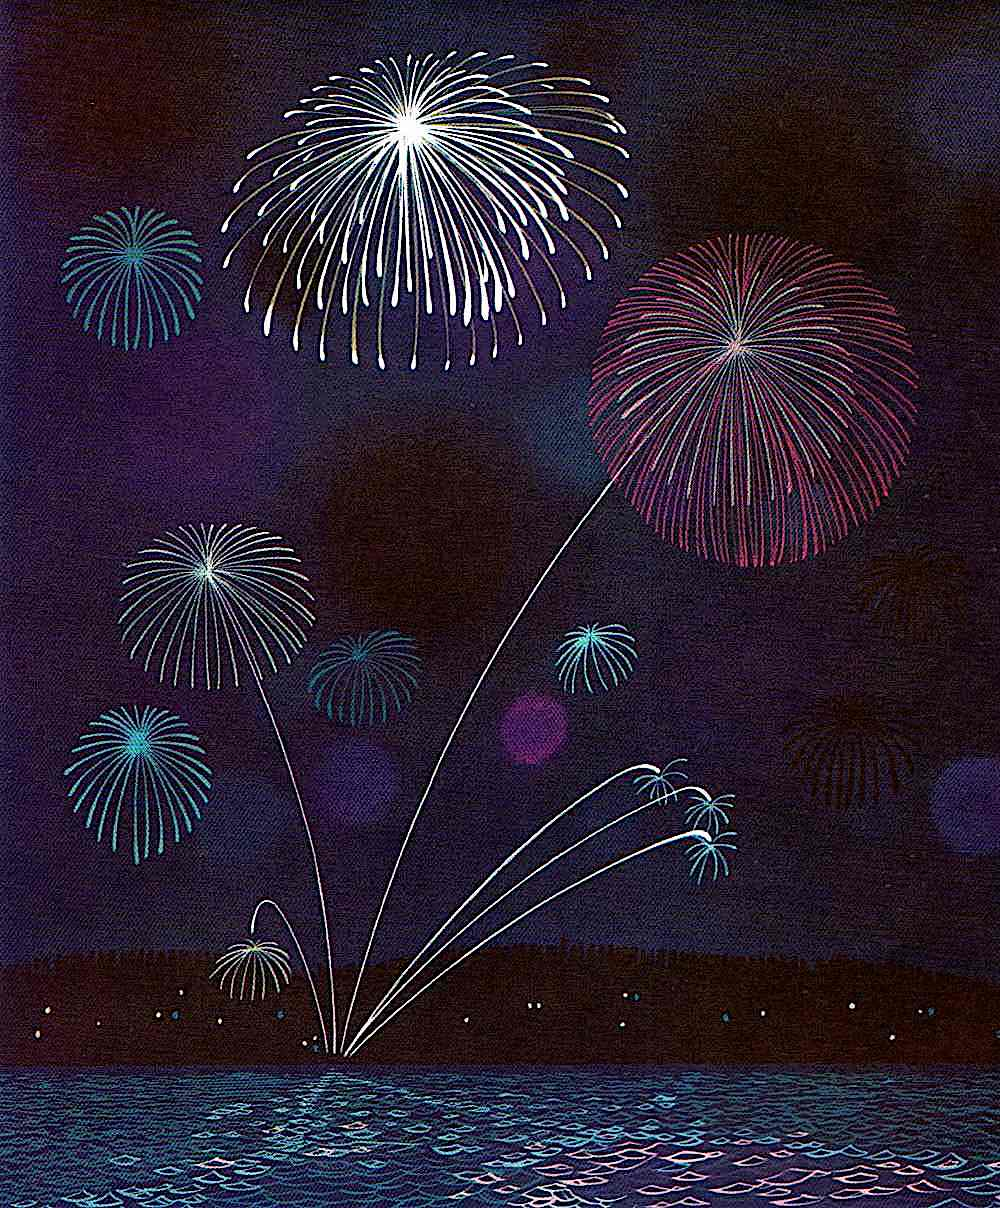 a Merrill Grant illustration of fireworks at night over water